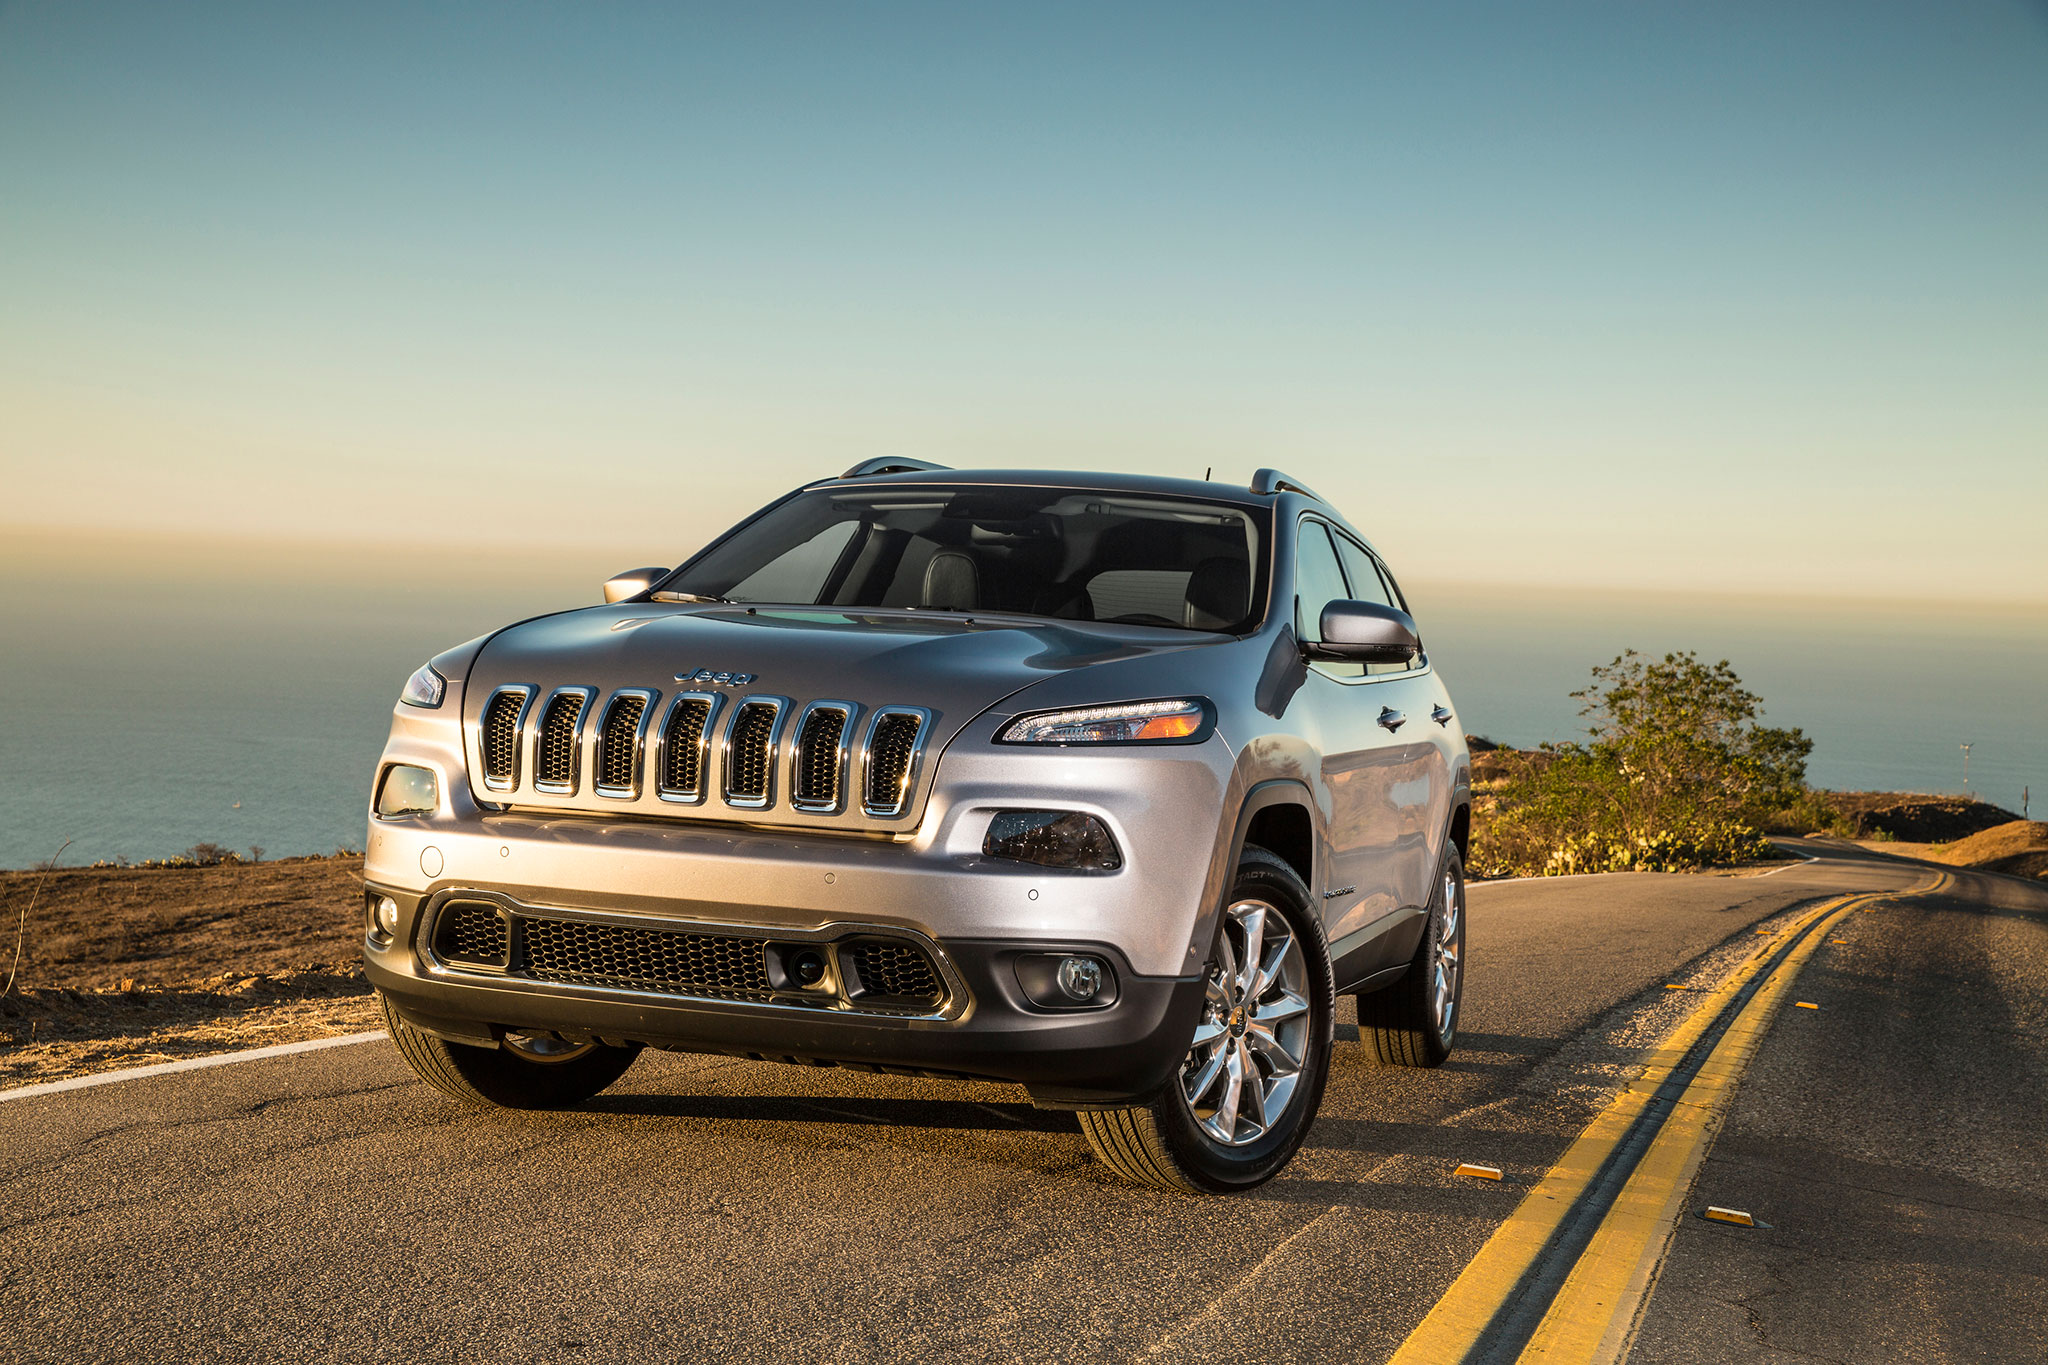 2014 Jeep Cherokee Not Recommended By Consumer Reports Automobile